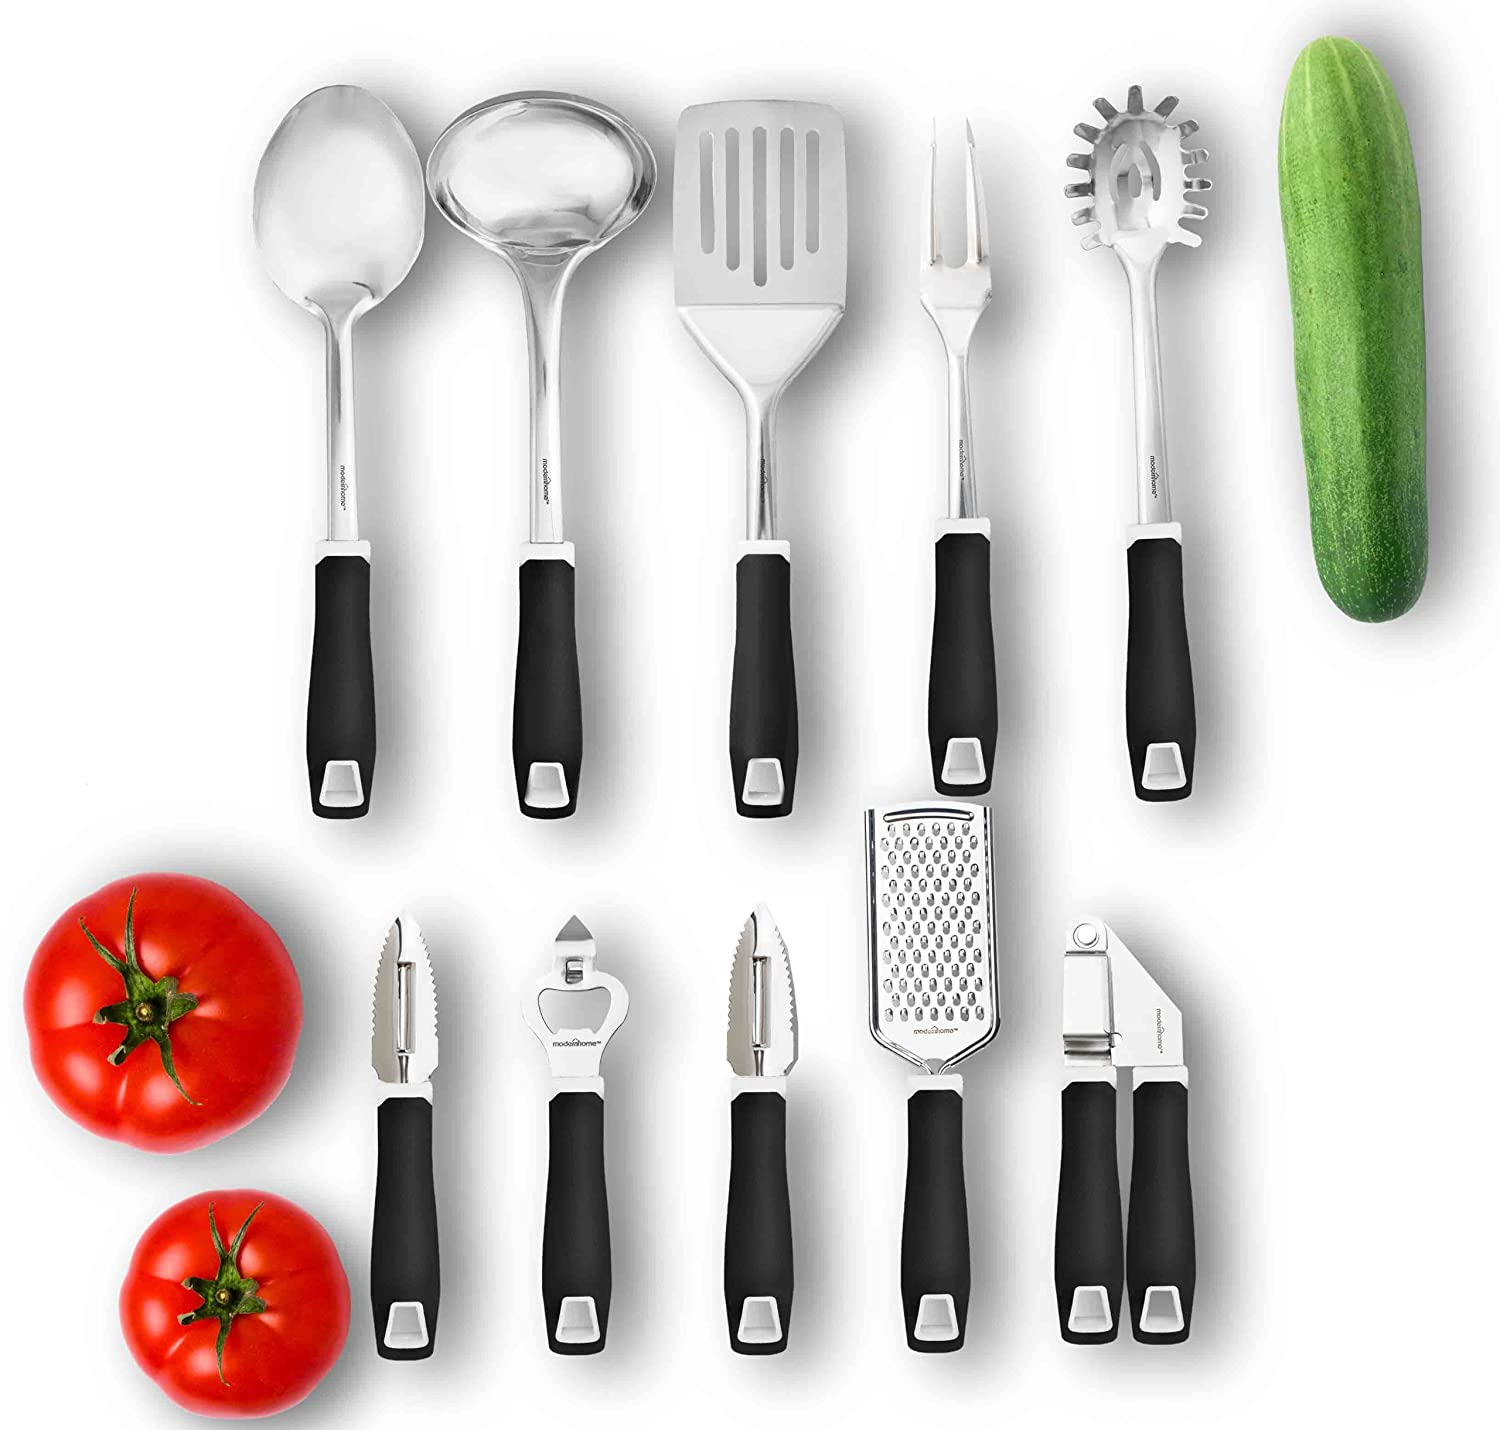 amazoncom modernhome piece kitchen tools  gadget set  - amazoncom modernhome piece kitchen tools  gadget set kitchen  dining